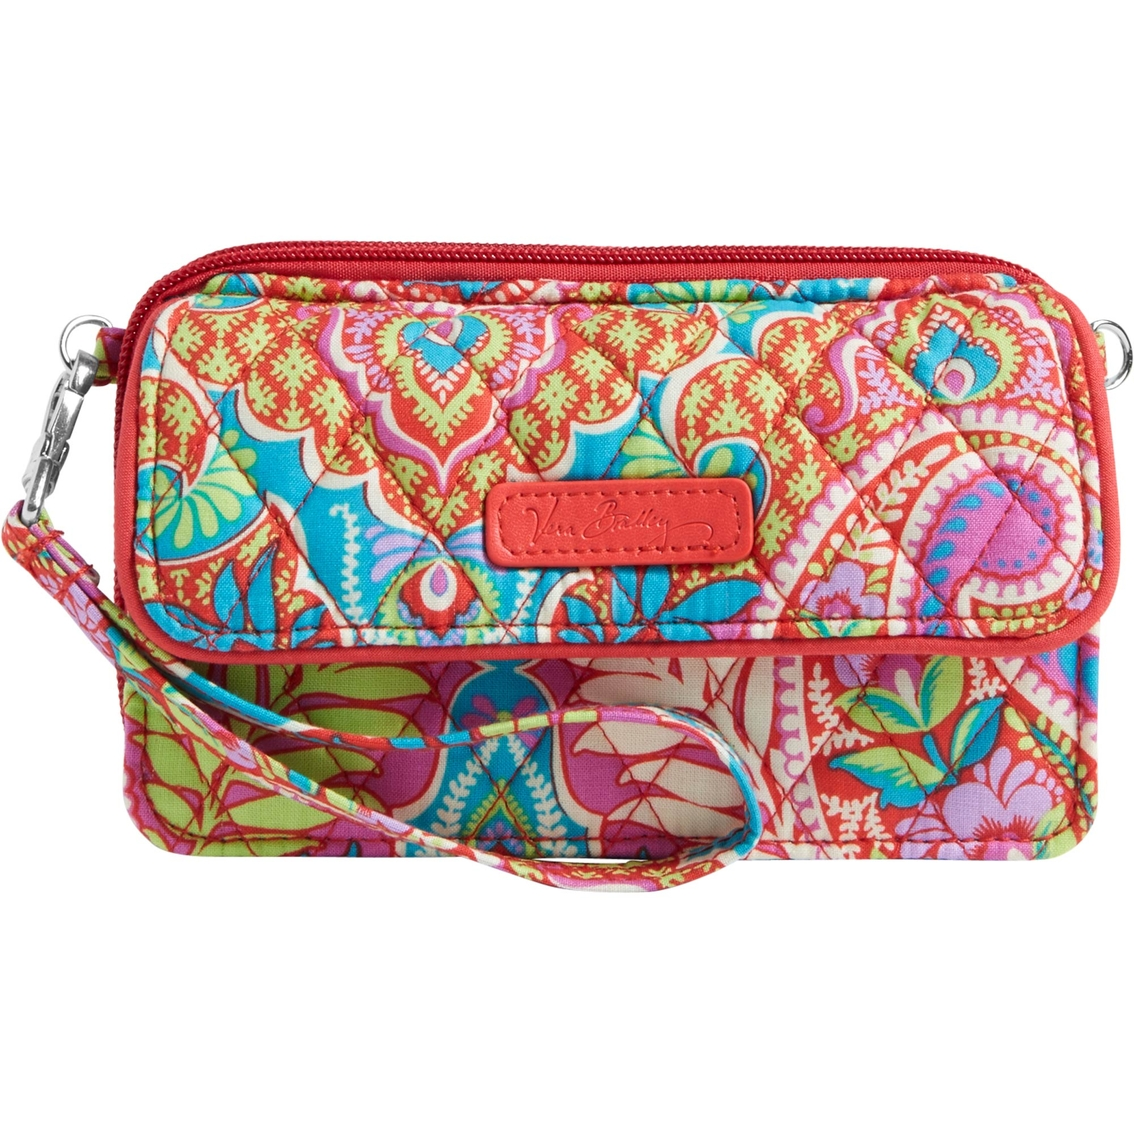 Vera bradley shower curtain - Vera Bradley All In One Crossbody For Iphone 6 Paisley In Paradise